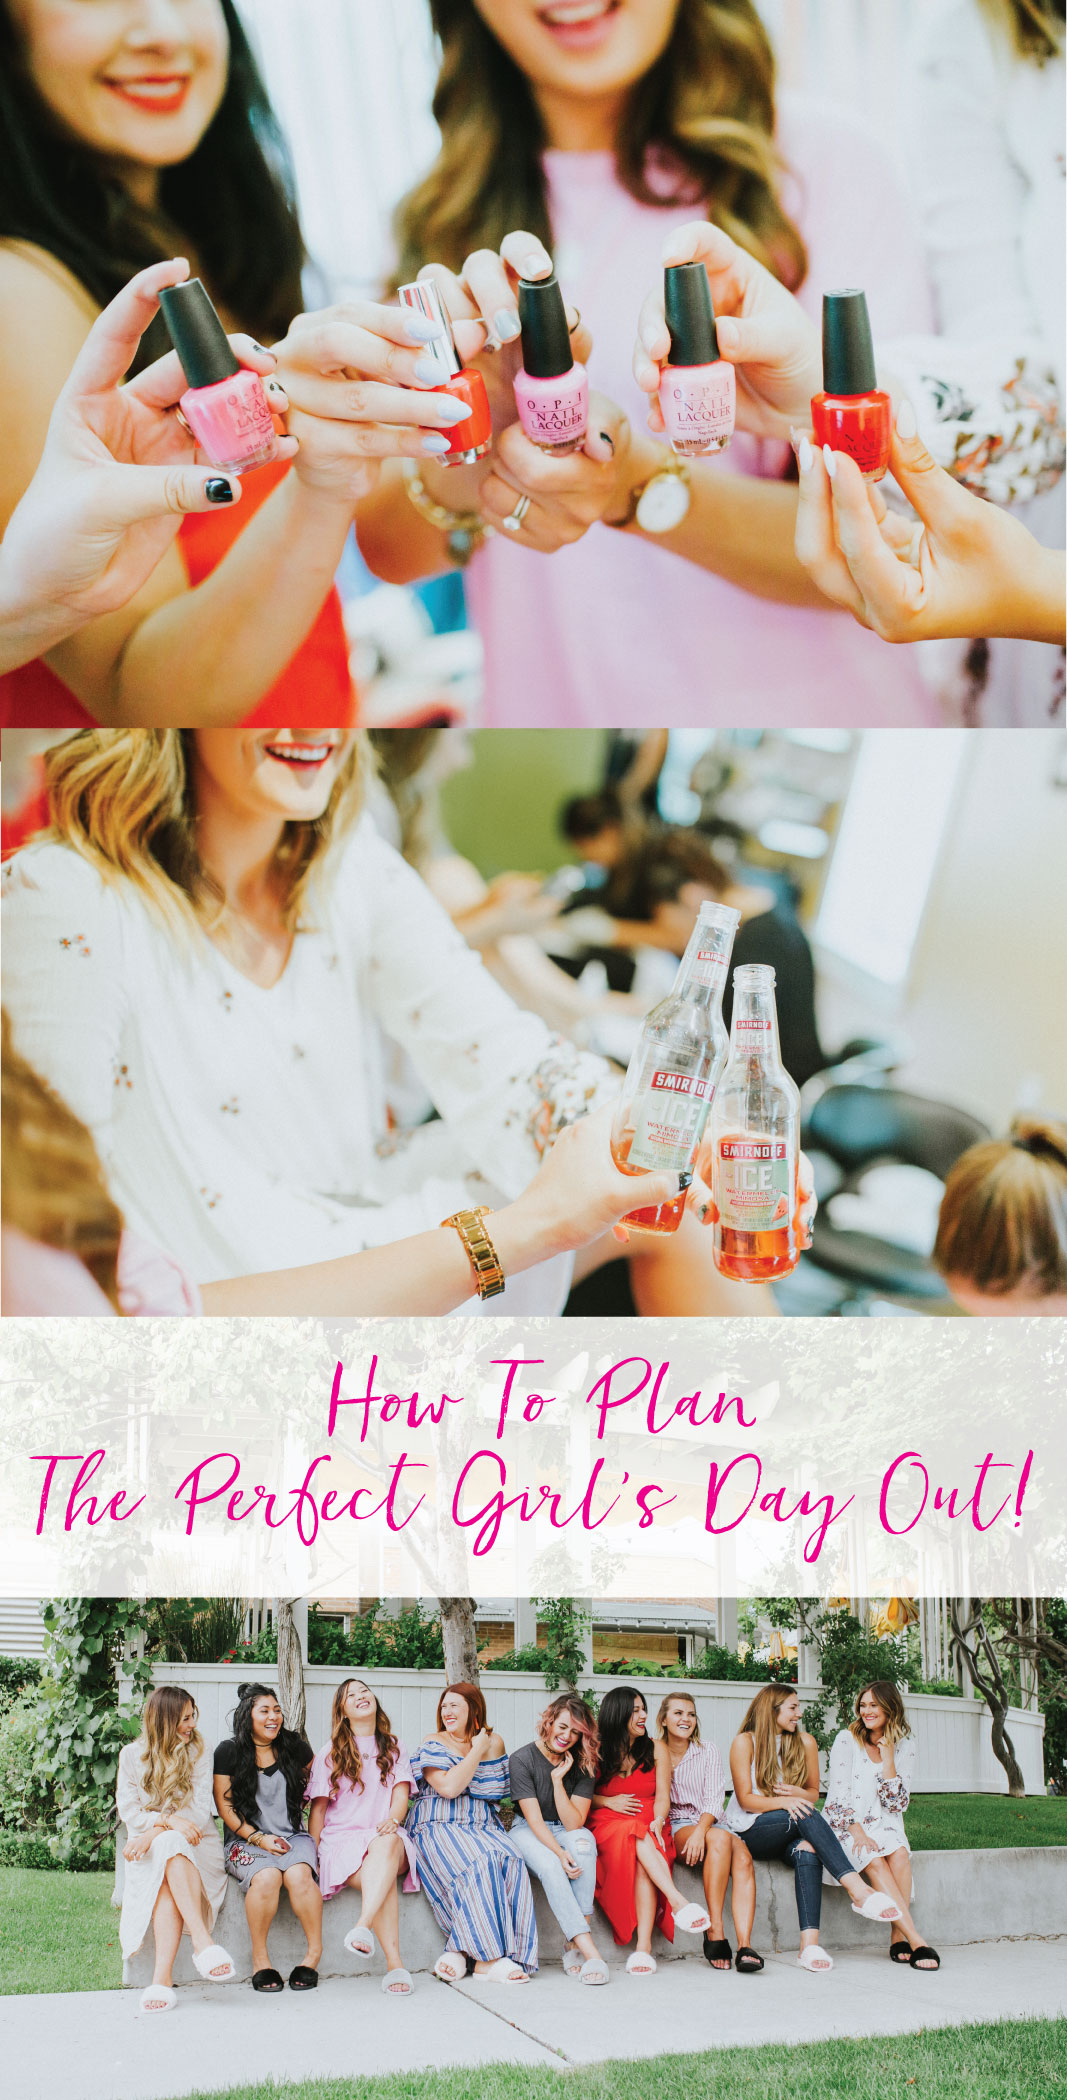 How To Plan The Perfect Girls Day Out! by popular Utah blogger Sandy A La Mode